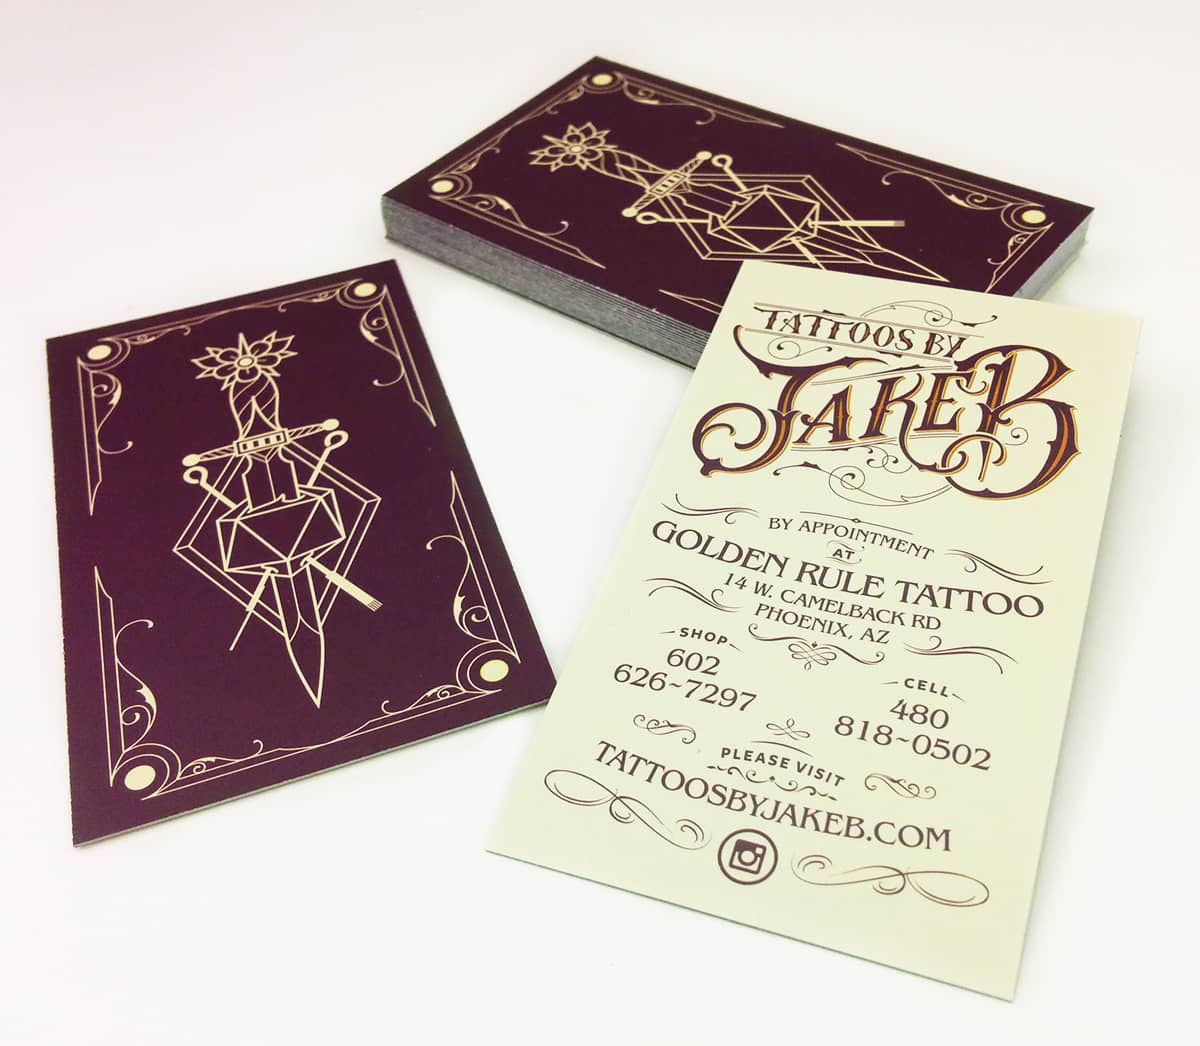 Jake B tattoo artist business cards